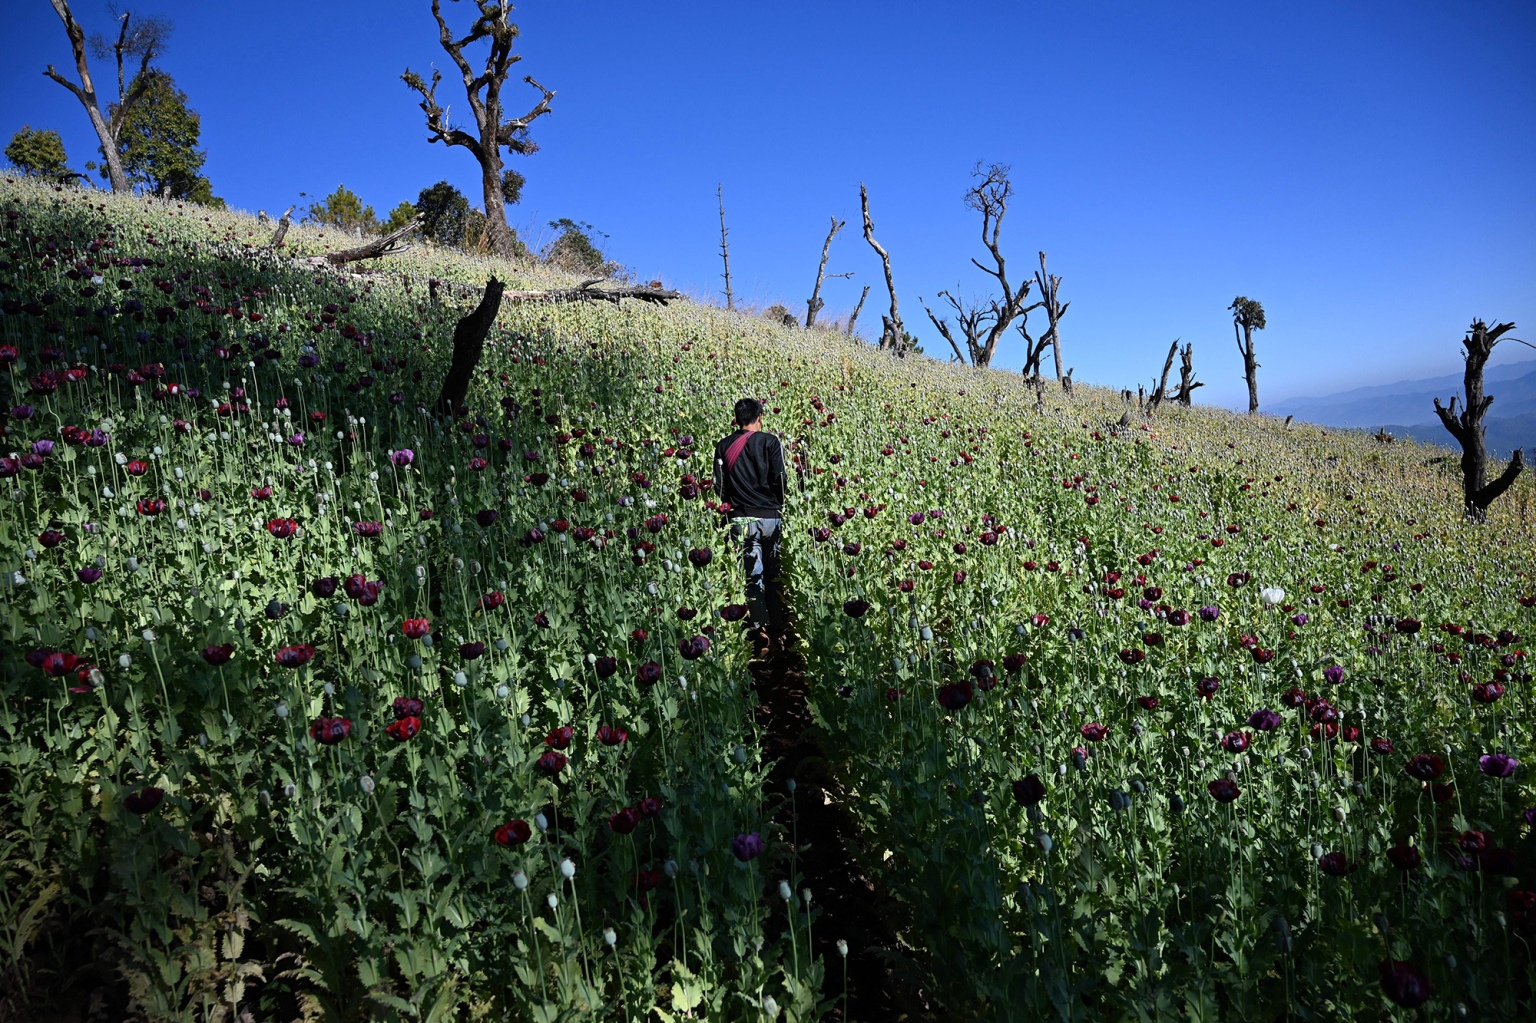 A farmer works in an illegal poppy field in Hopong, Myanmar, on Feb. 3. (Ye Aung Thu/AFP/Getty Images)